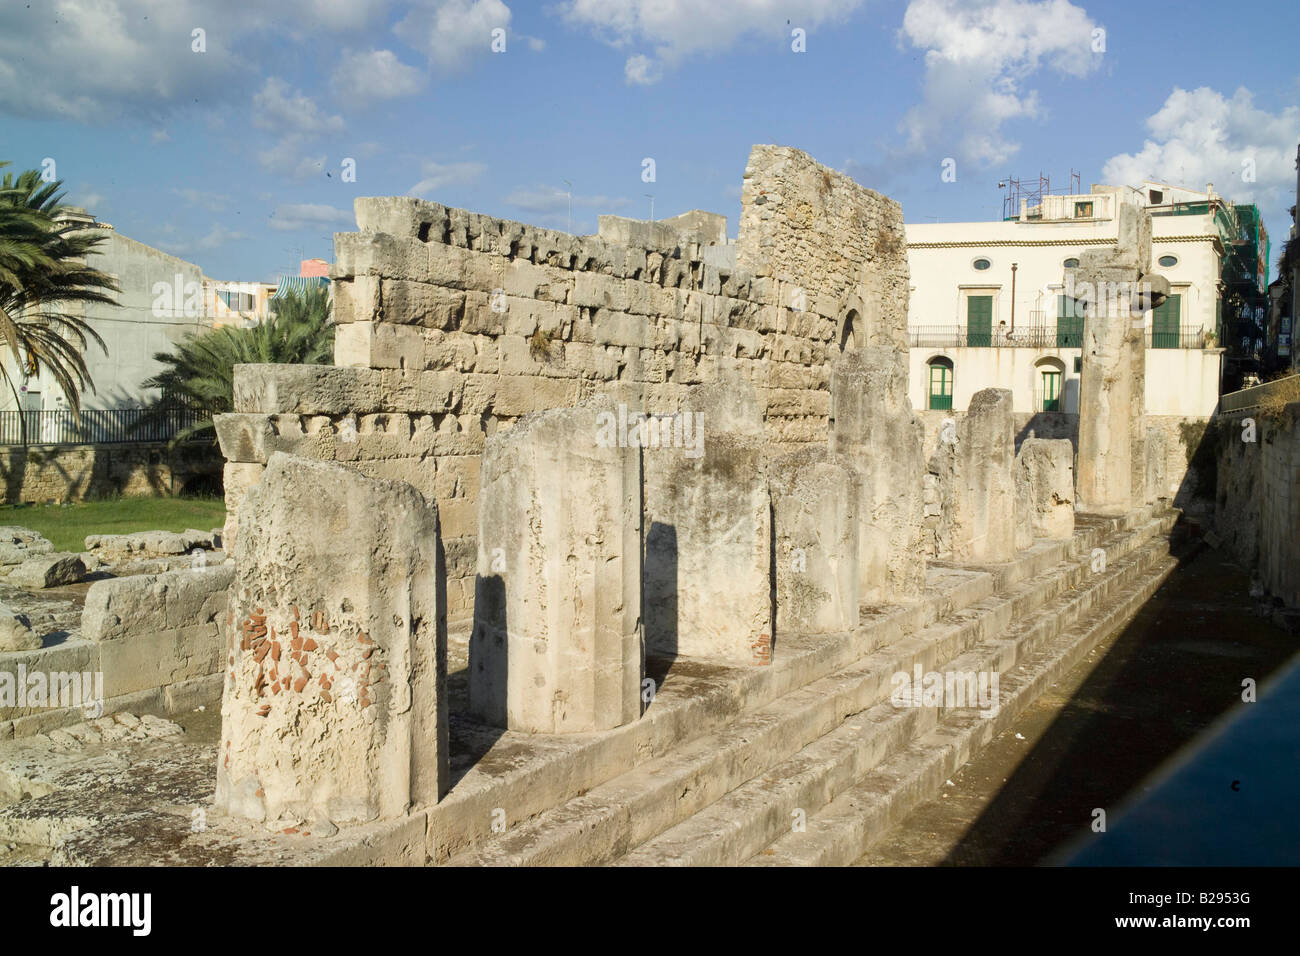 Temple of Apollo Syracusa Sicily Date 28 05 2008 Ref ZB693 114320 0073 COMPULSORY CREDIT World Pictures Photoshot - Stock Image